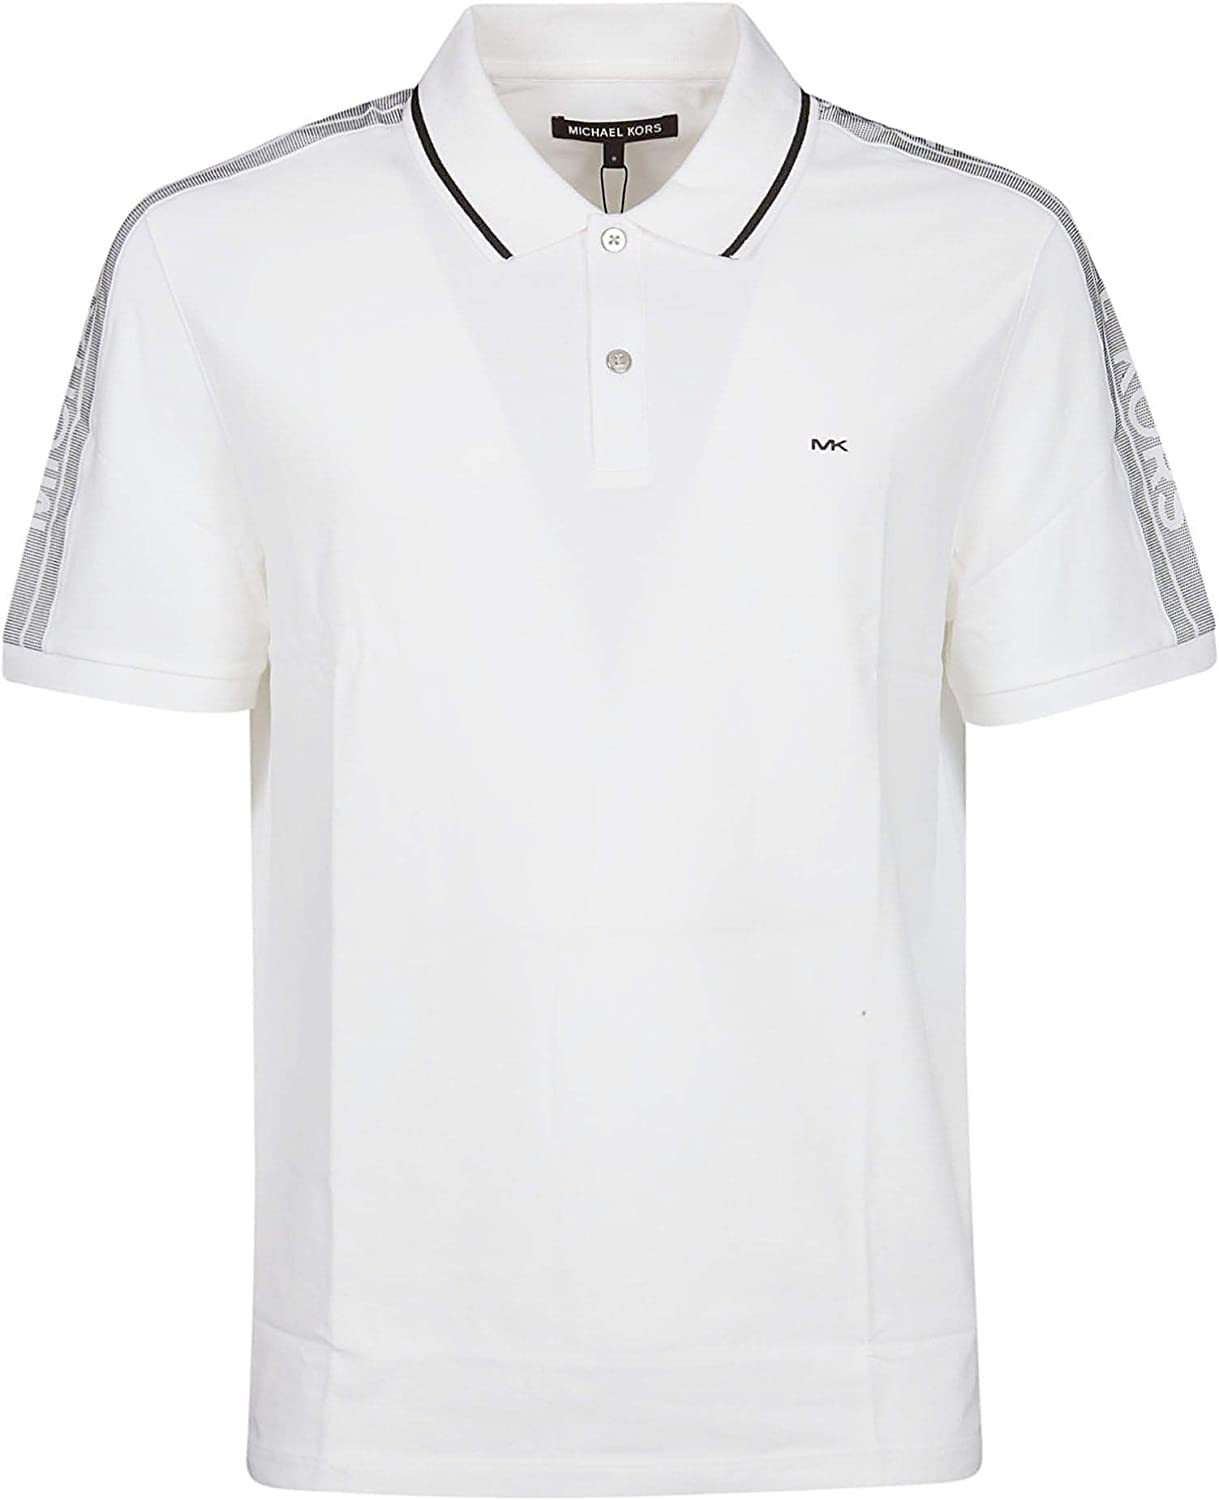 Michael Kors Luxury Fashion Hombre CS95HY8167100 Blanco Polo ...